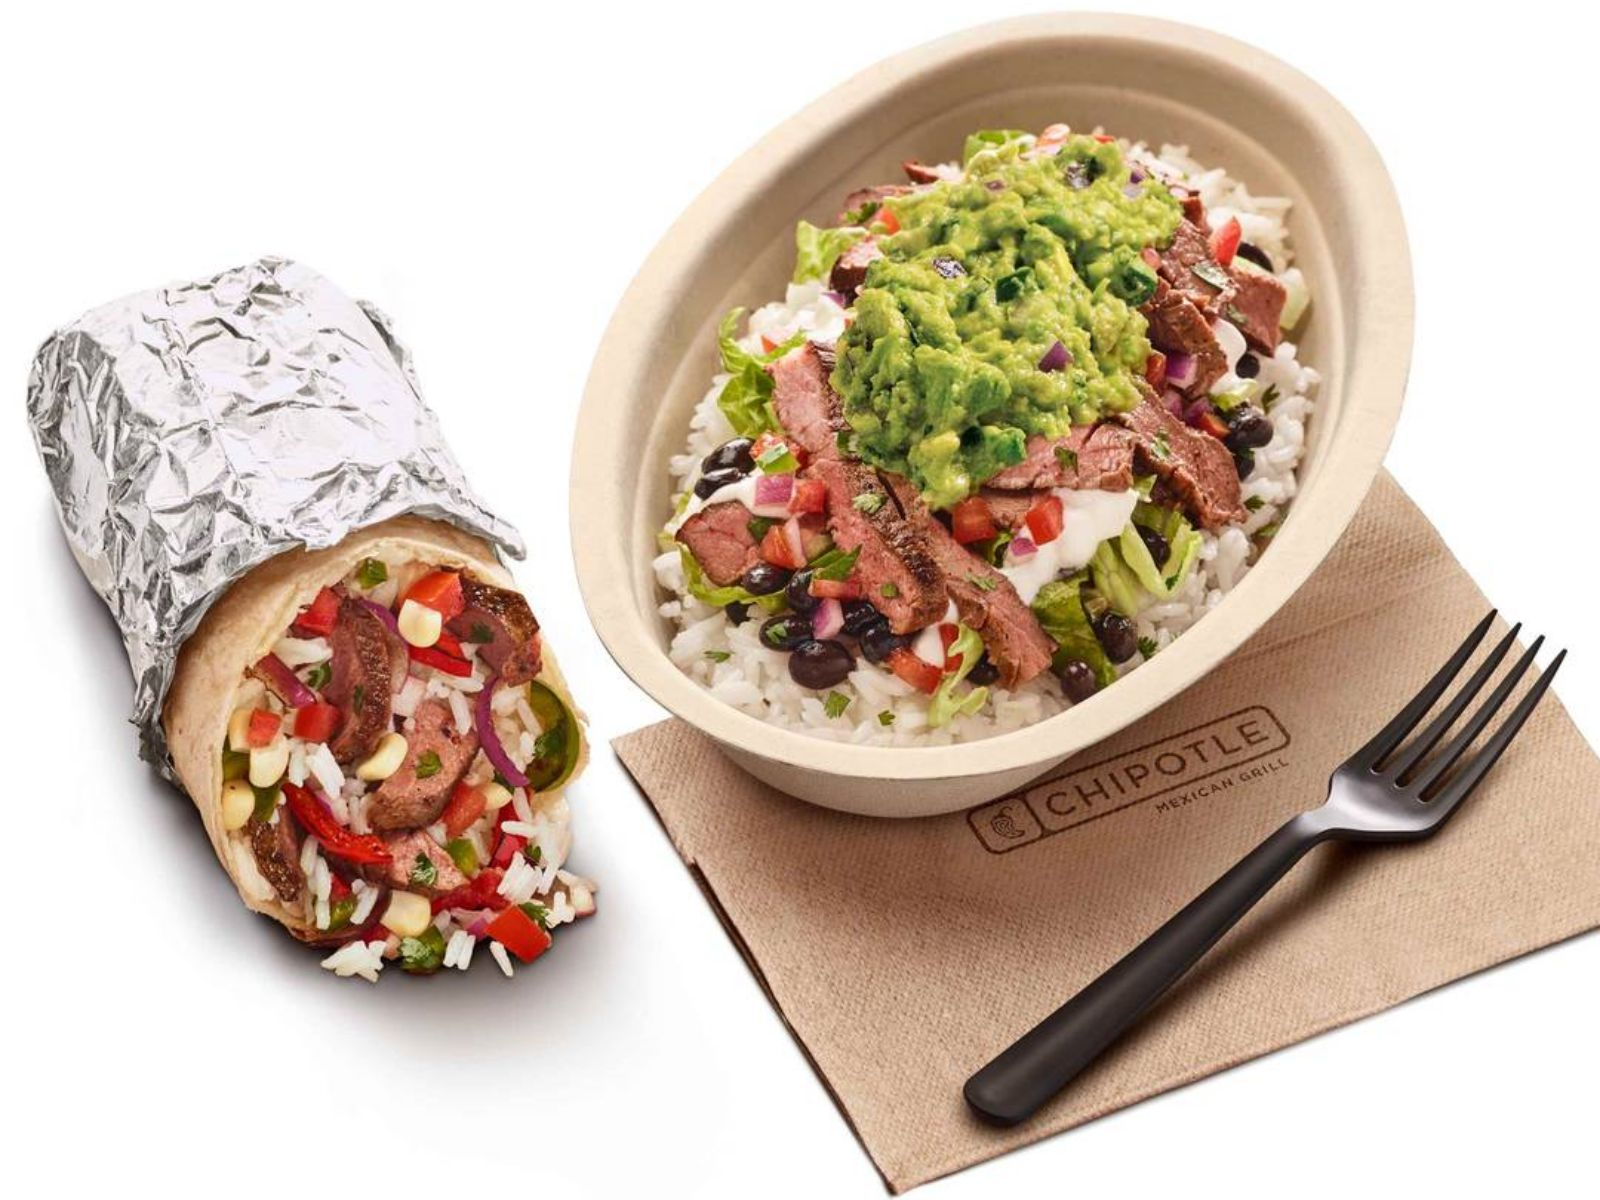 Chipotle Mexican Grill | Exchange @ Gwinnett